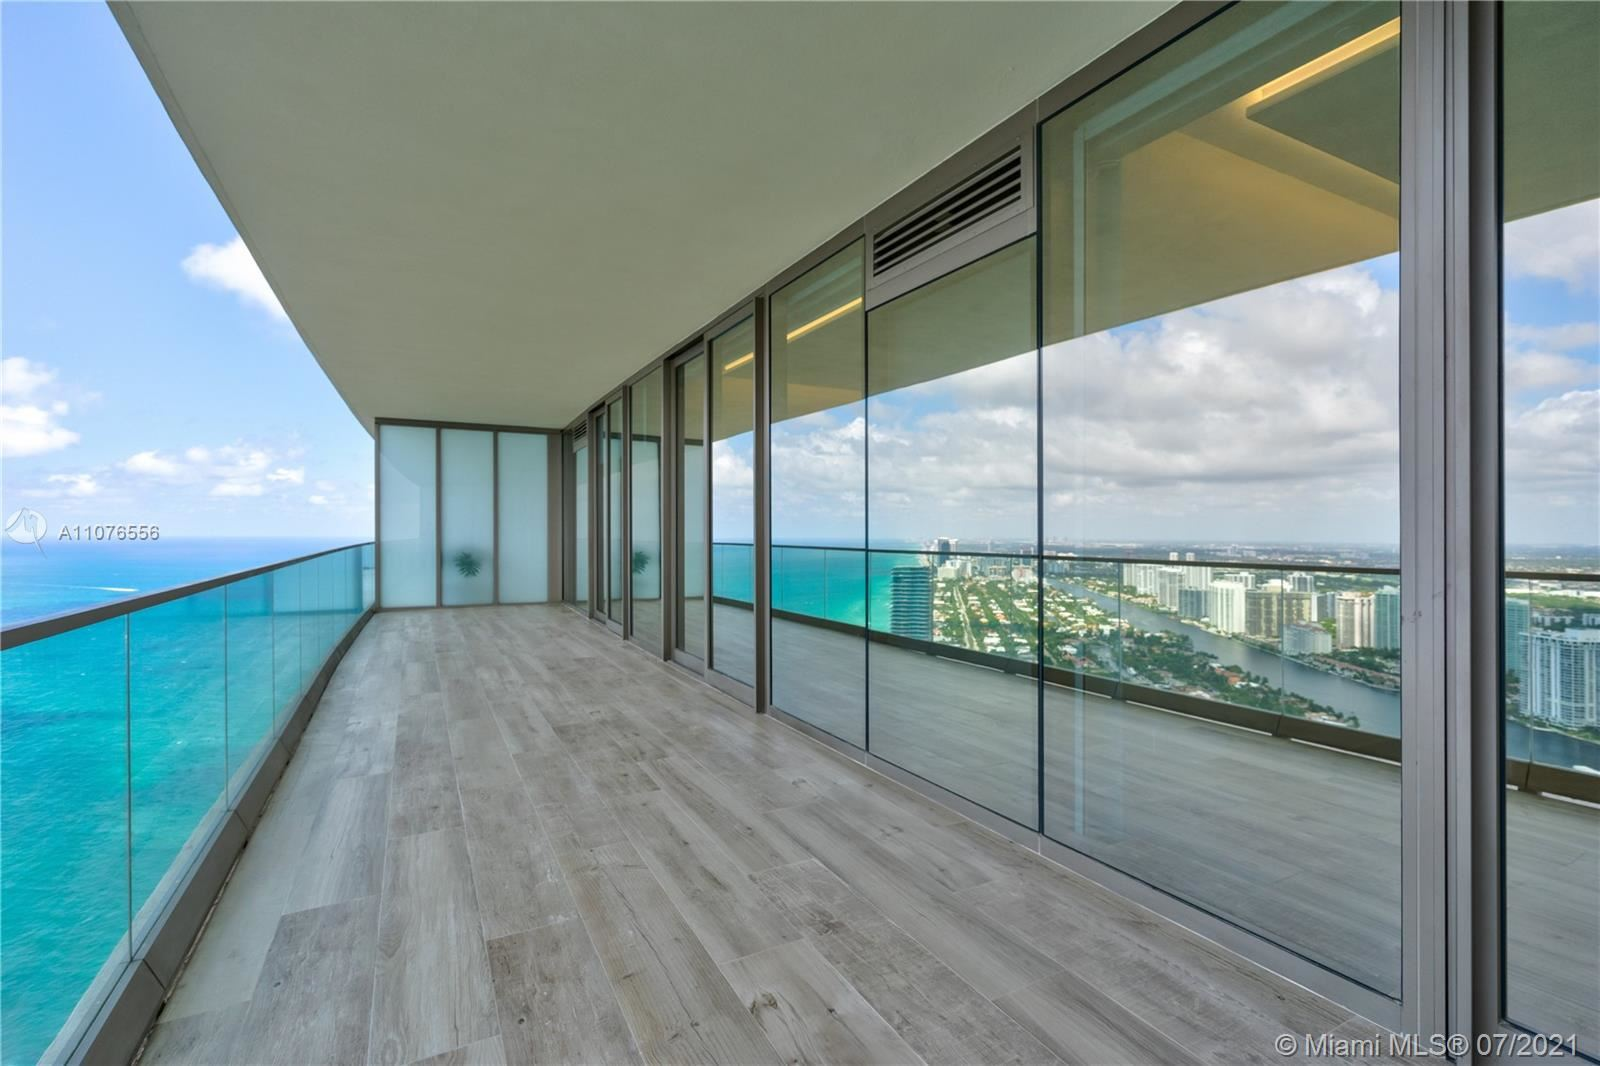 18975 Collins Ave #5202, Sunny Isles, FL 33160 - #: A11076556